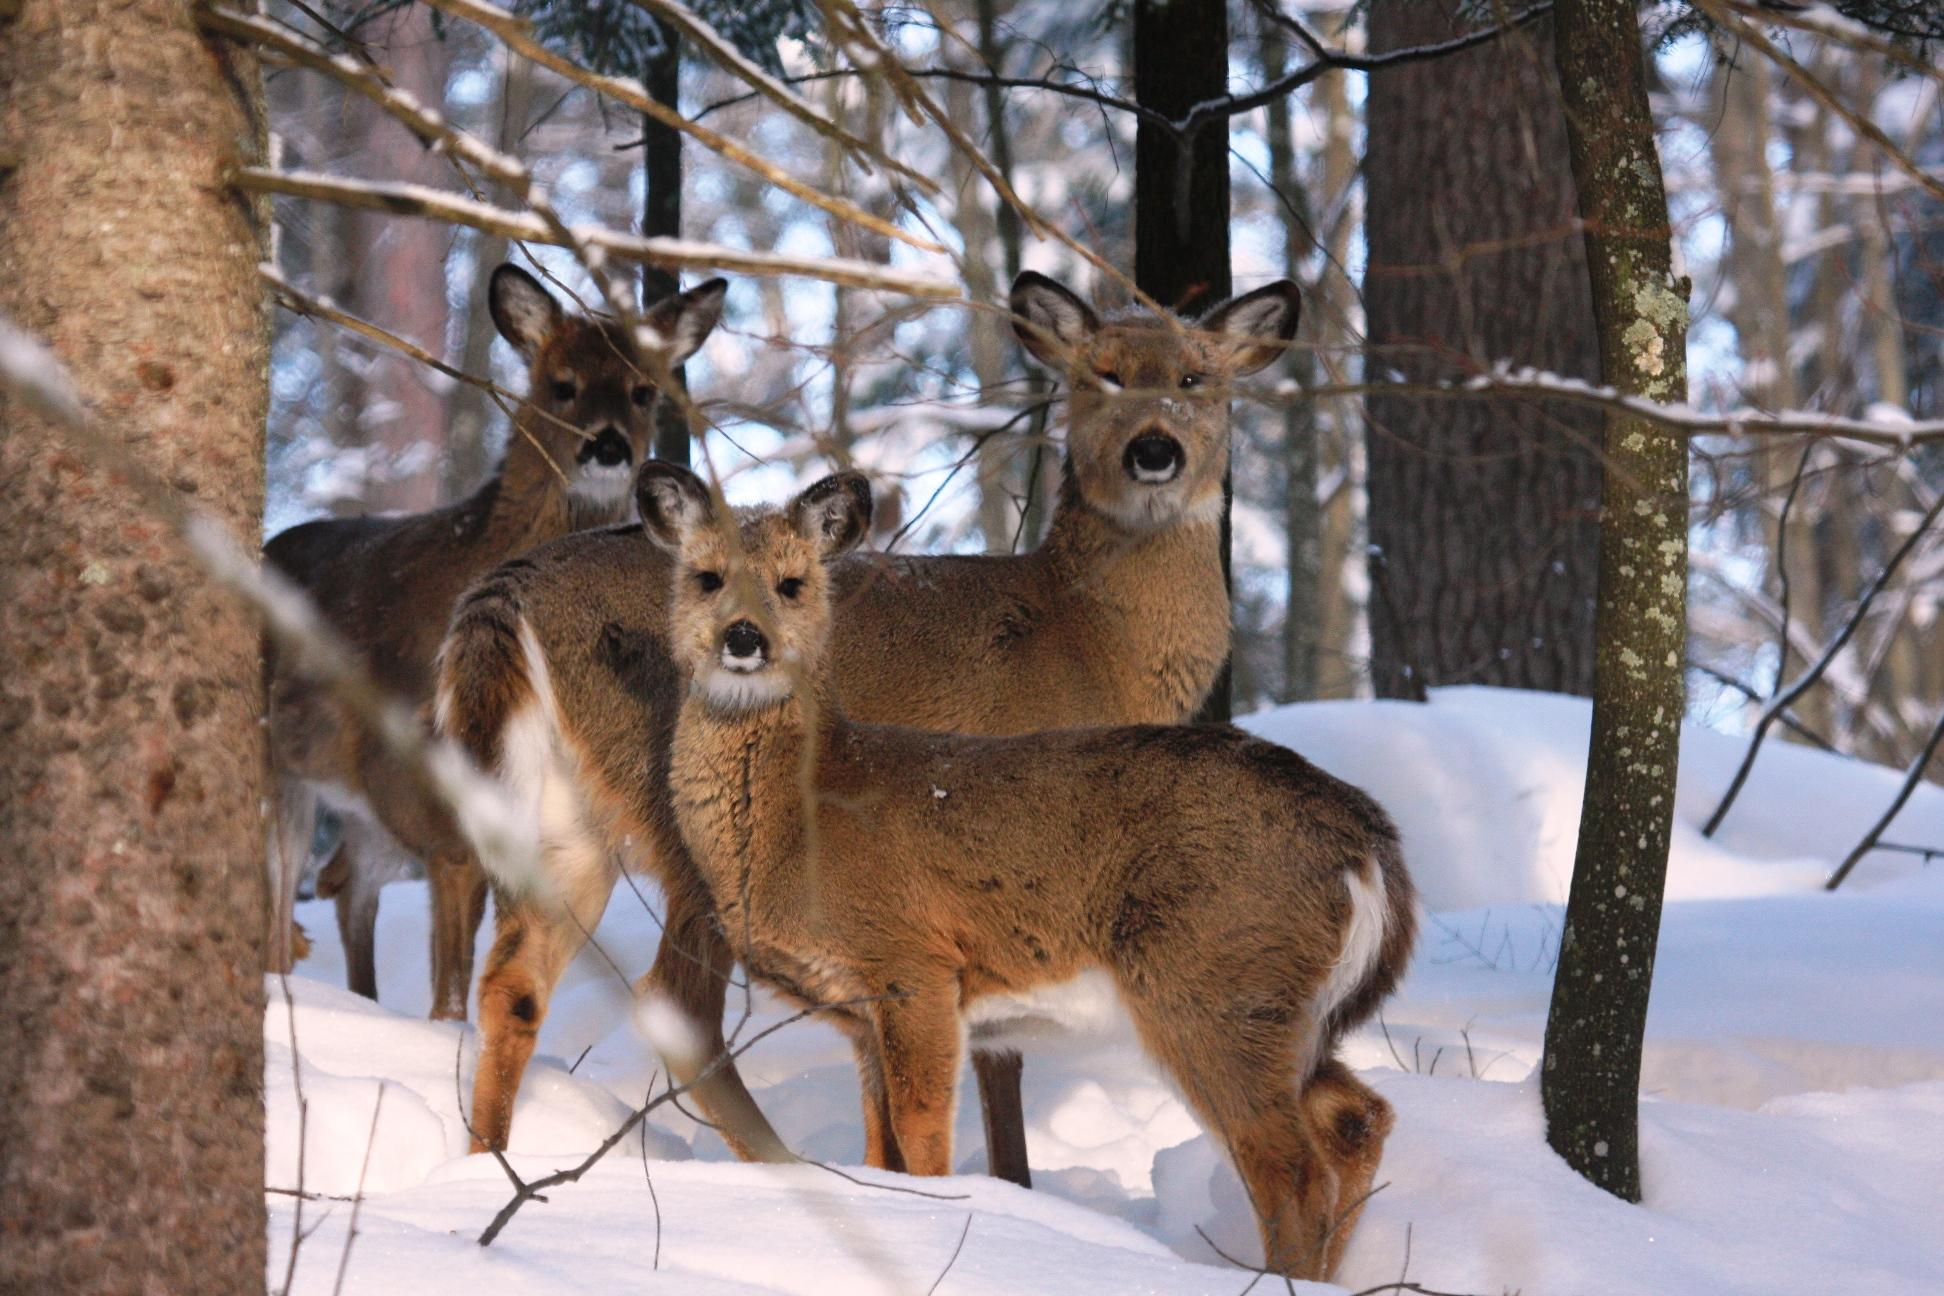 New Crossbow Licenses Already Popular Among Deer Hunters | WXPR